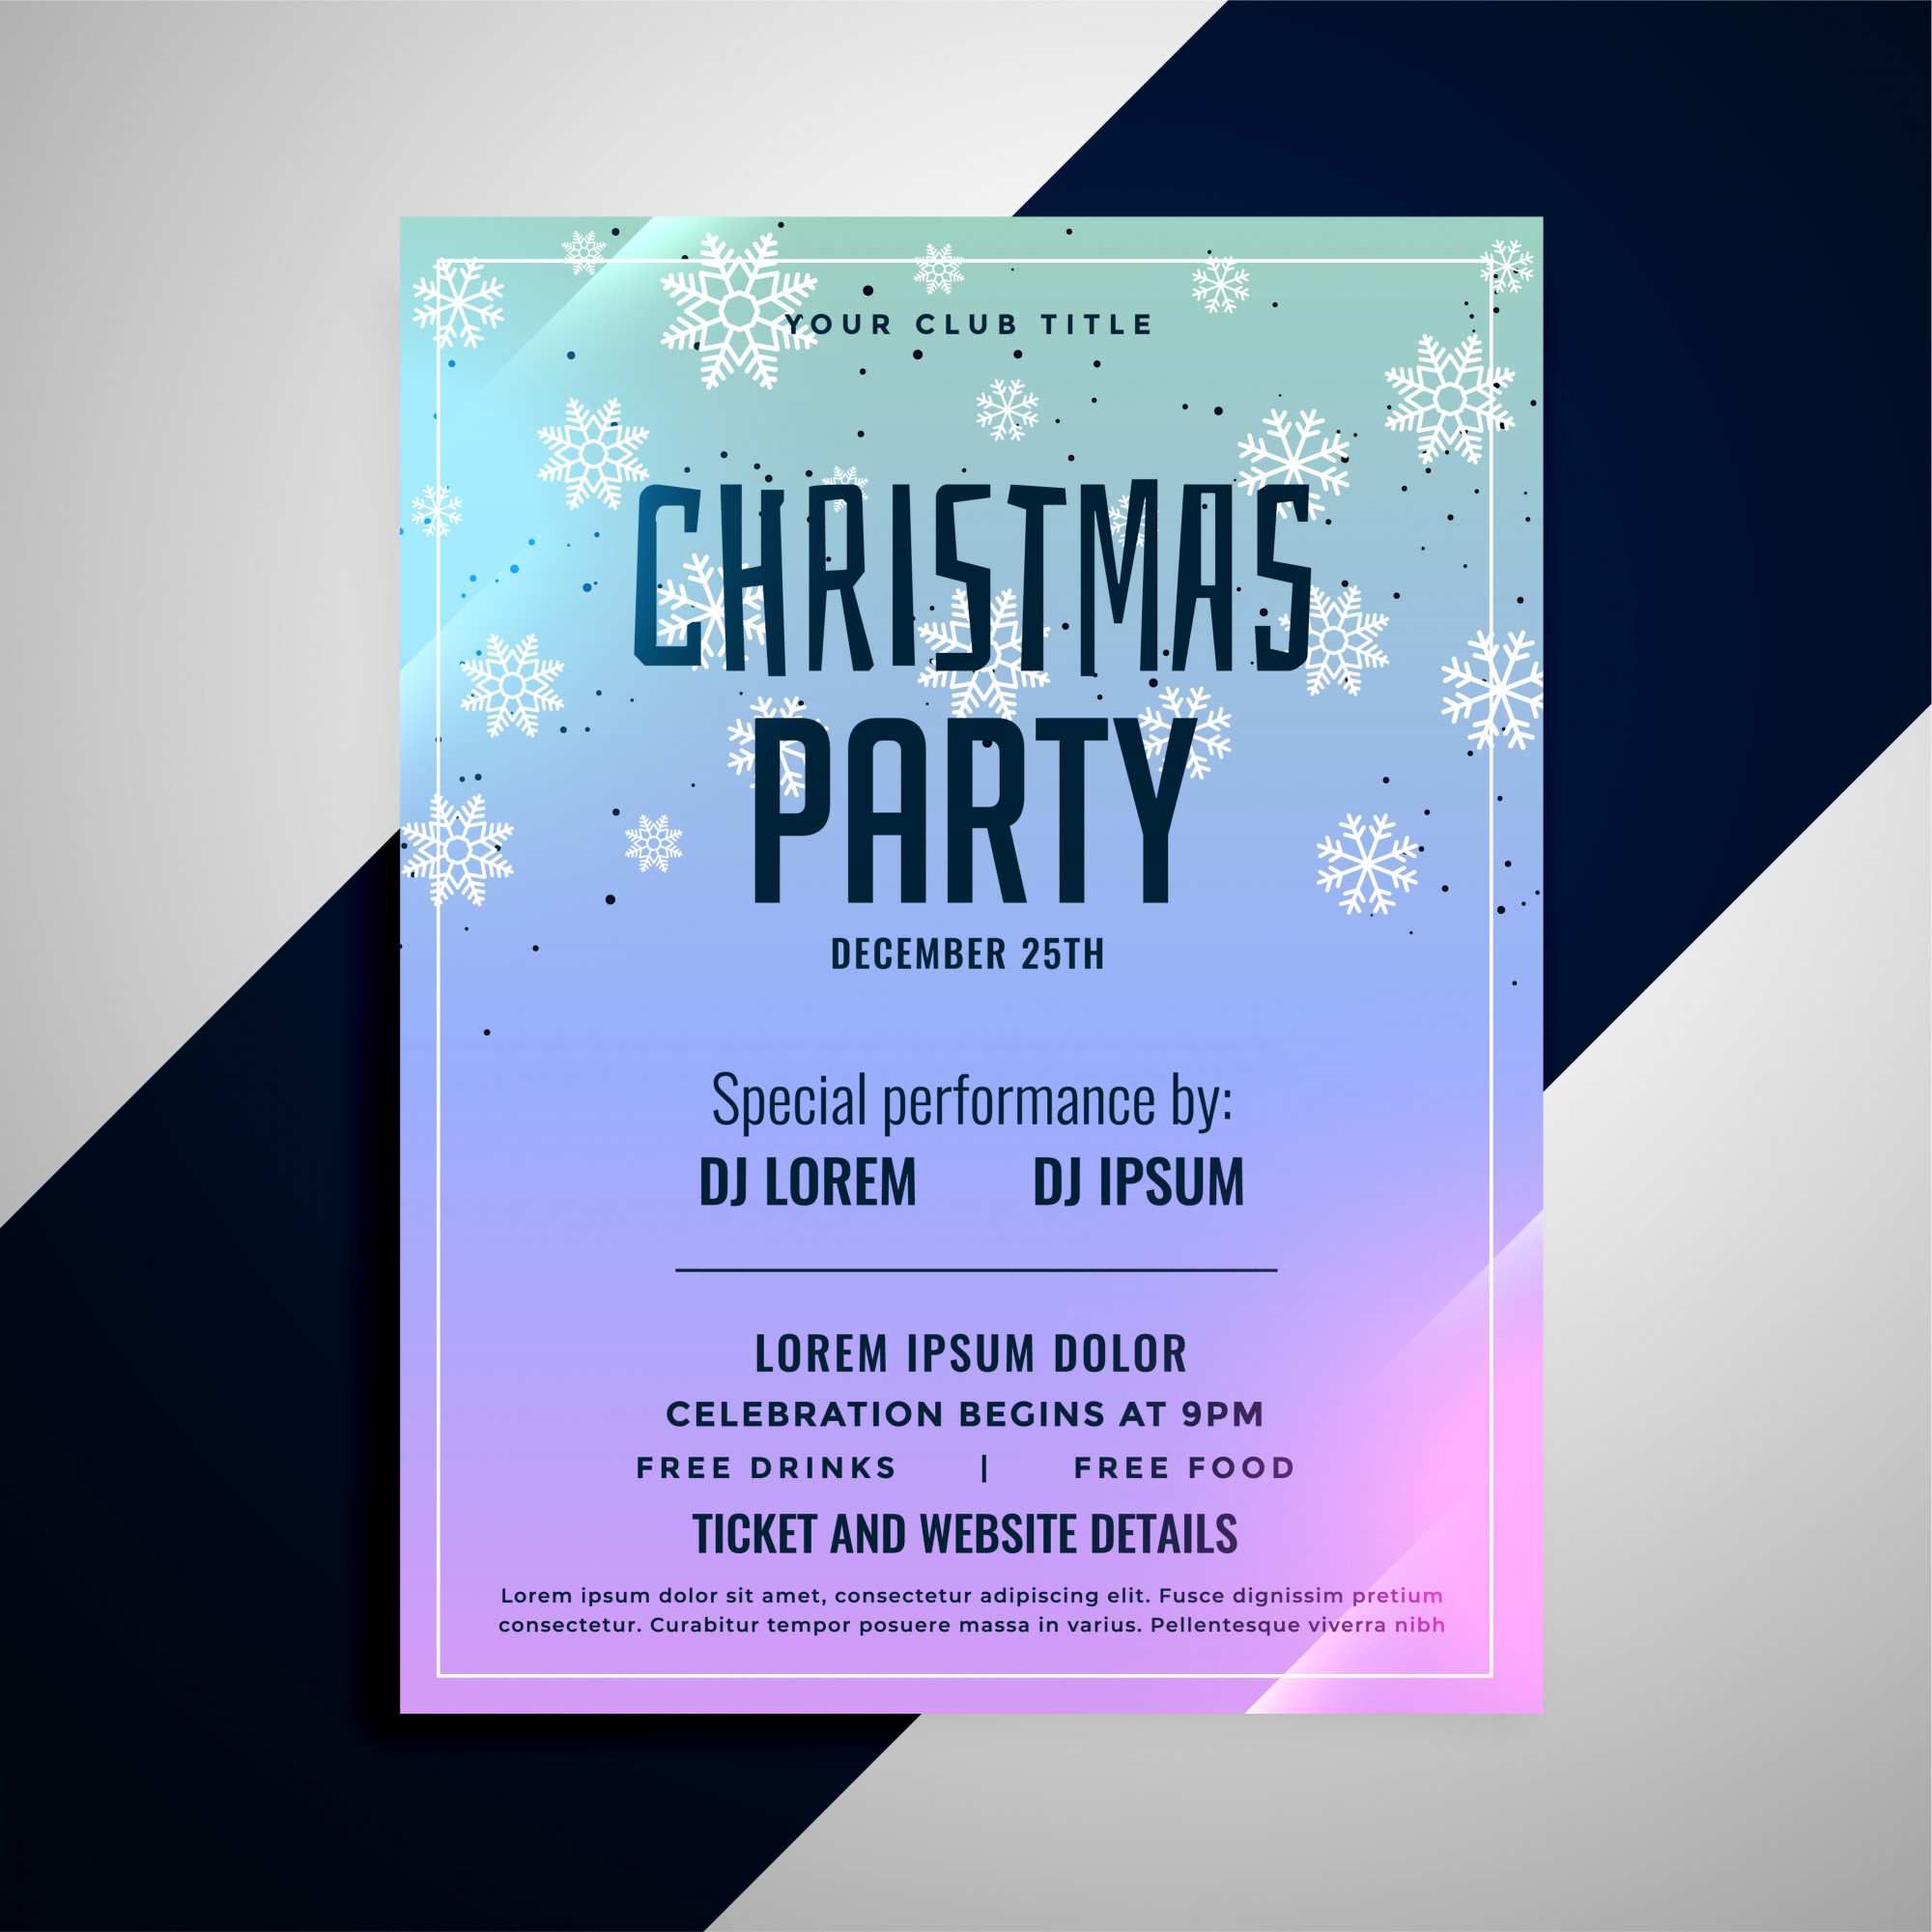 Christmas party flyer banner snowflakes template